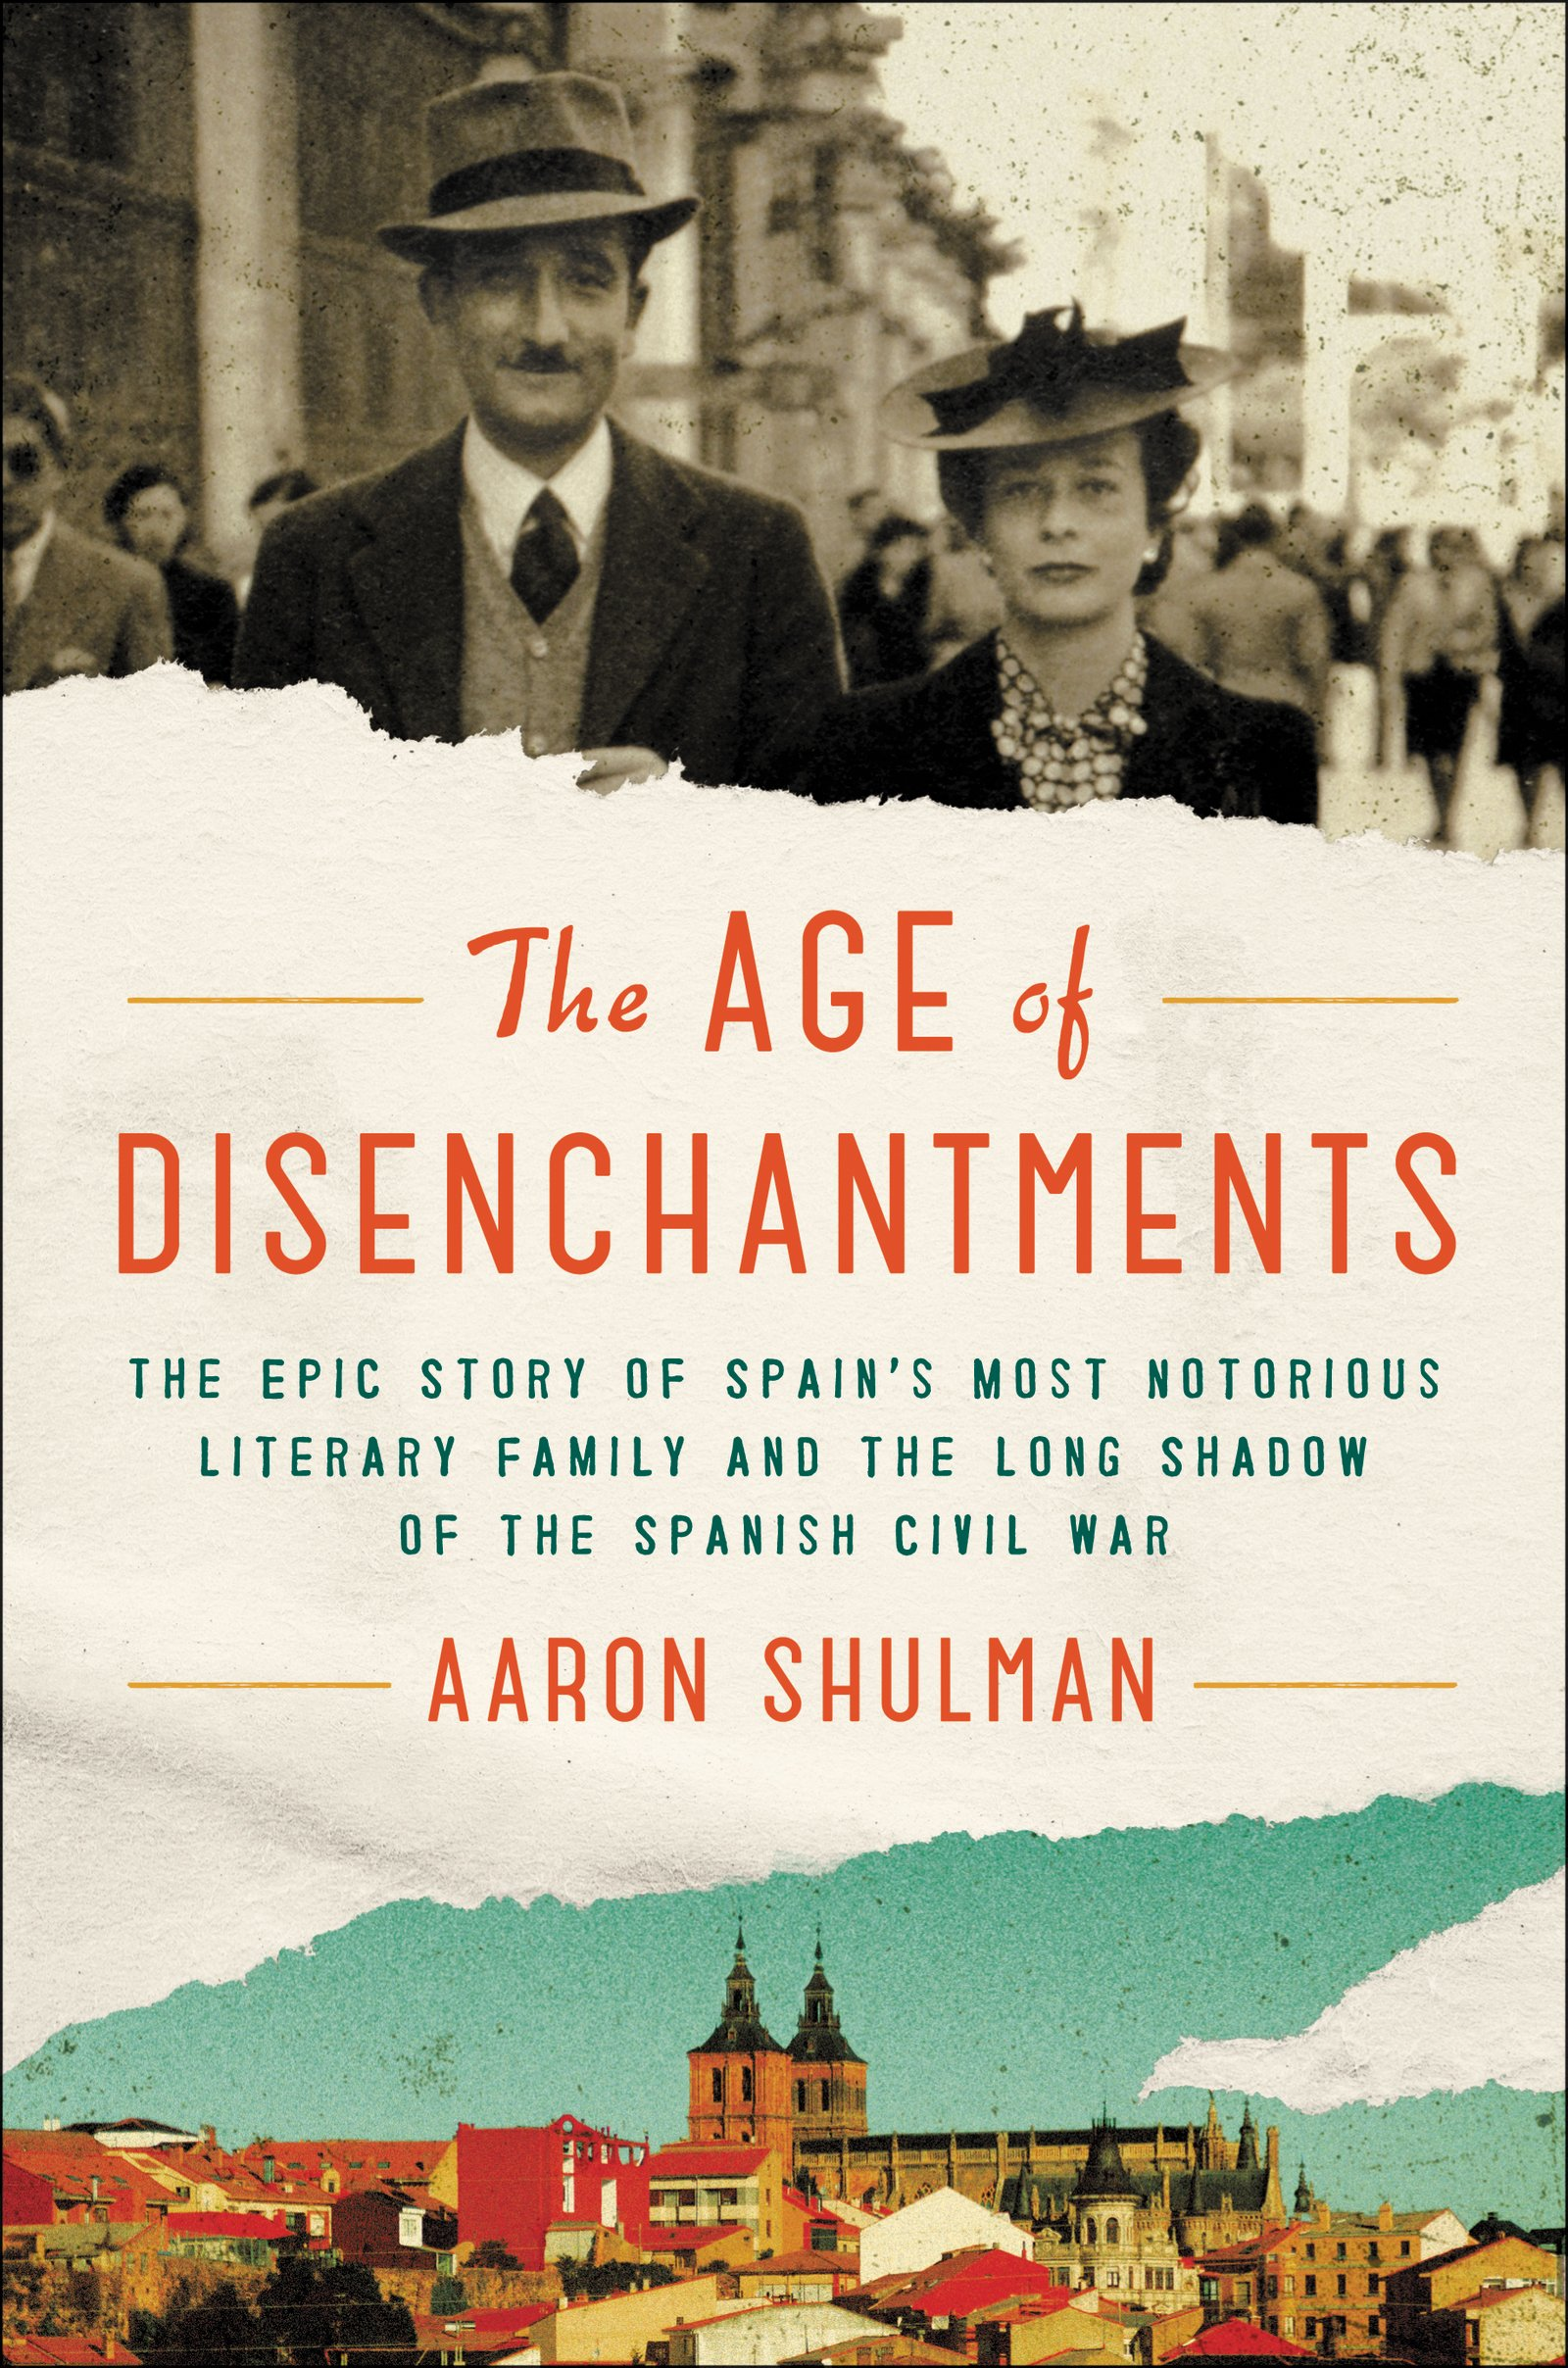 The Age of Disenchantments: The Epic Story of Spain's Most Notorious Literary Family and the Long Shadow of the Spanish Civil War por Aaron Shulman